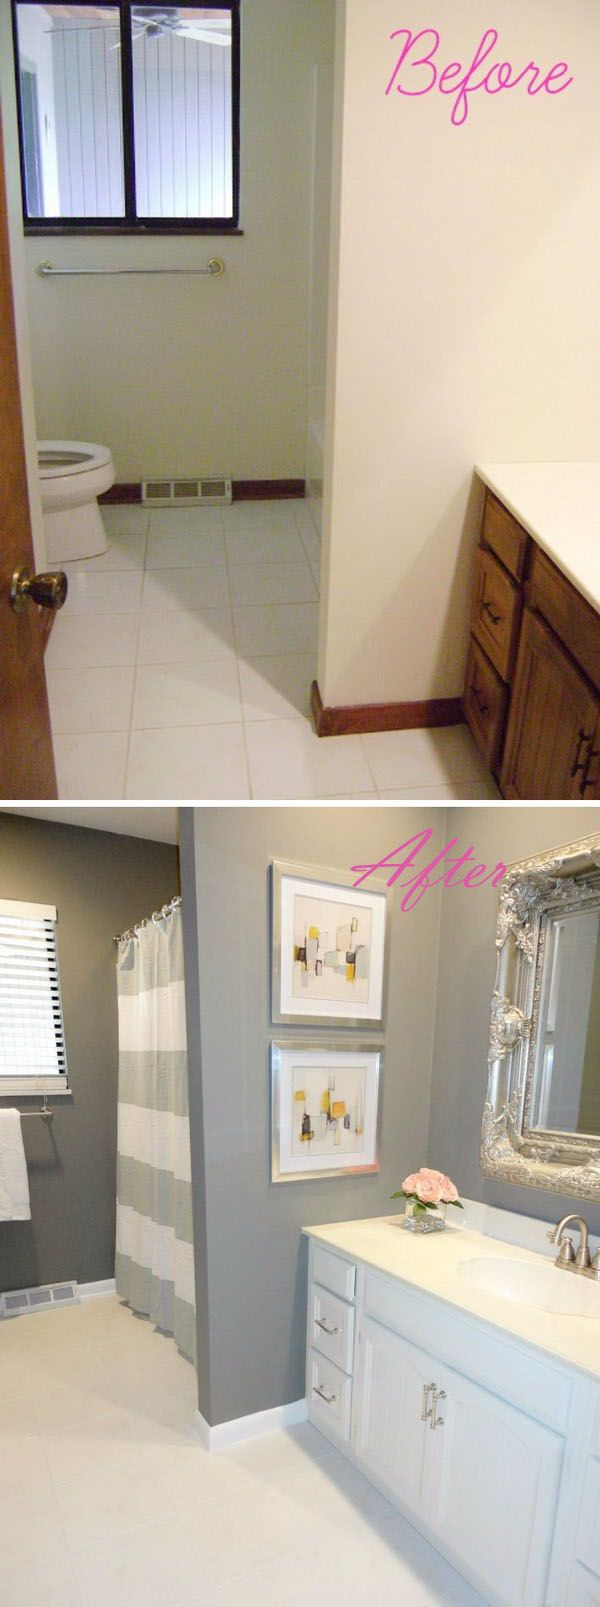 before and after 20 awesome bathroom makeovers diy